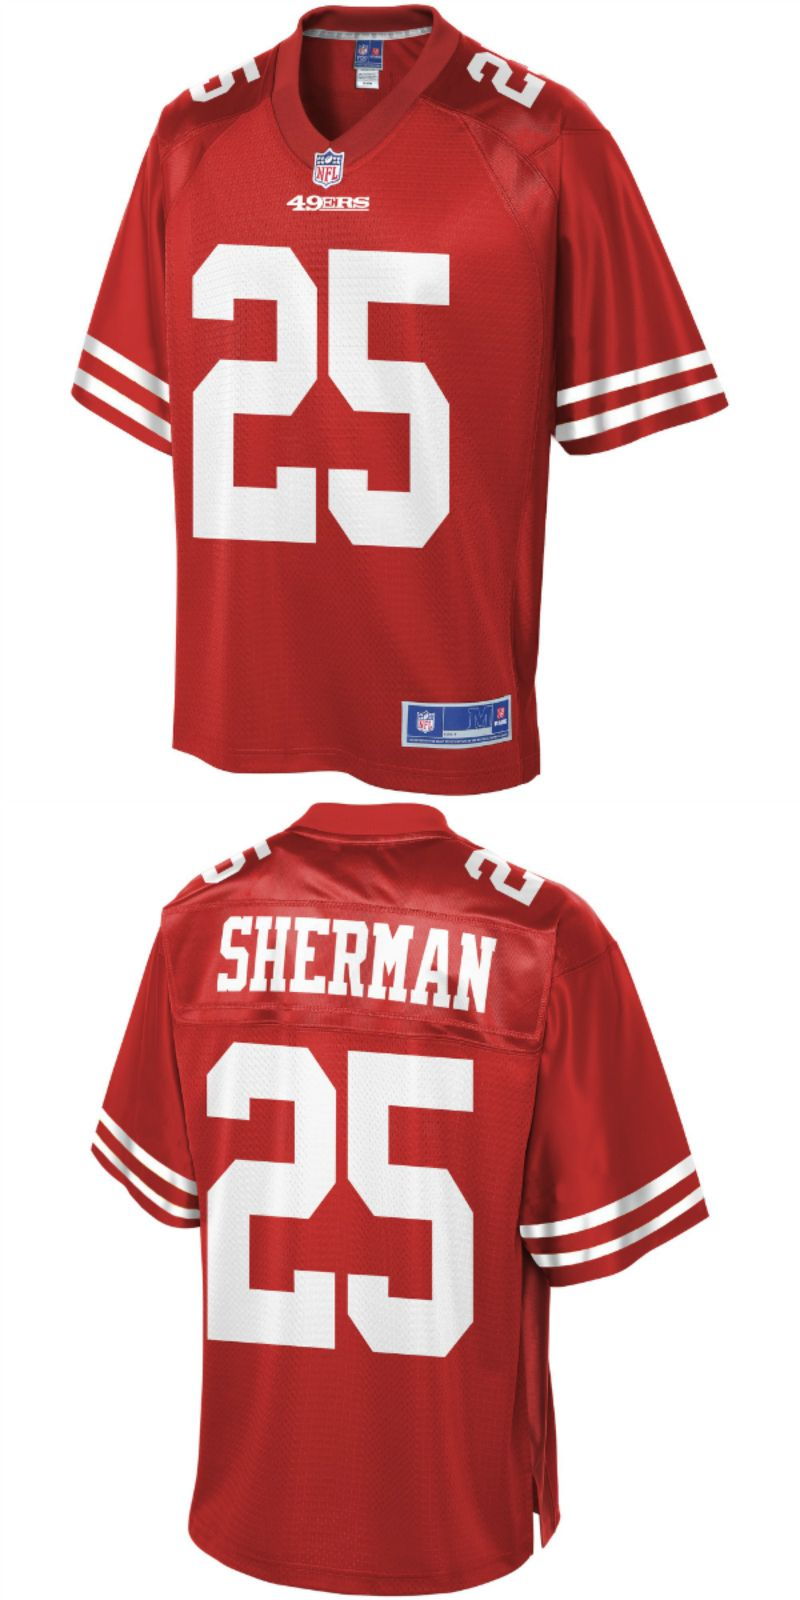 low priced cd14e 3738f UP TO 70% OFF. Richard Sherman San Francisco 49ers Nike ...